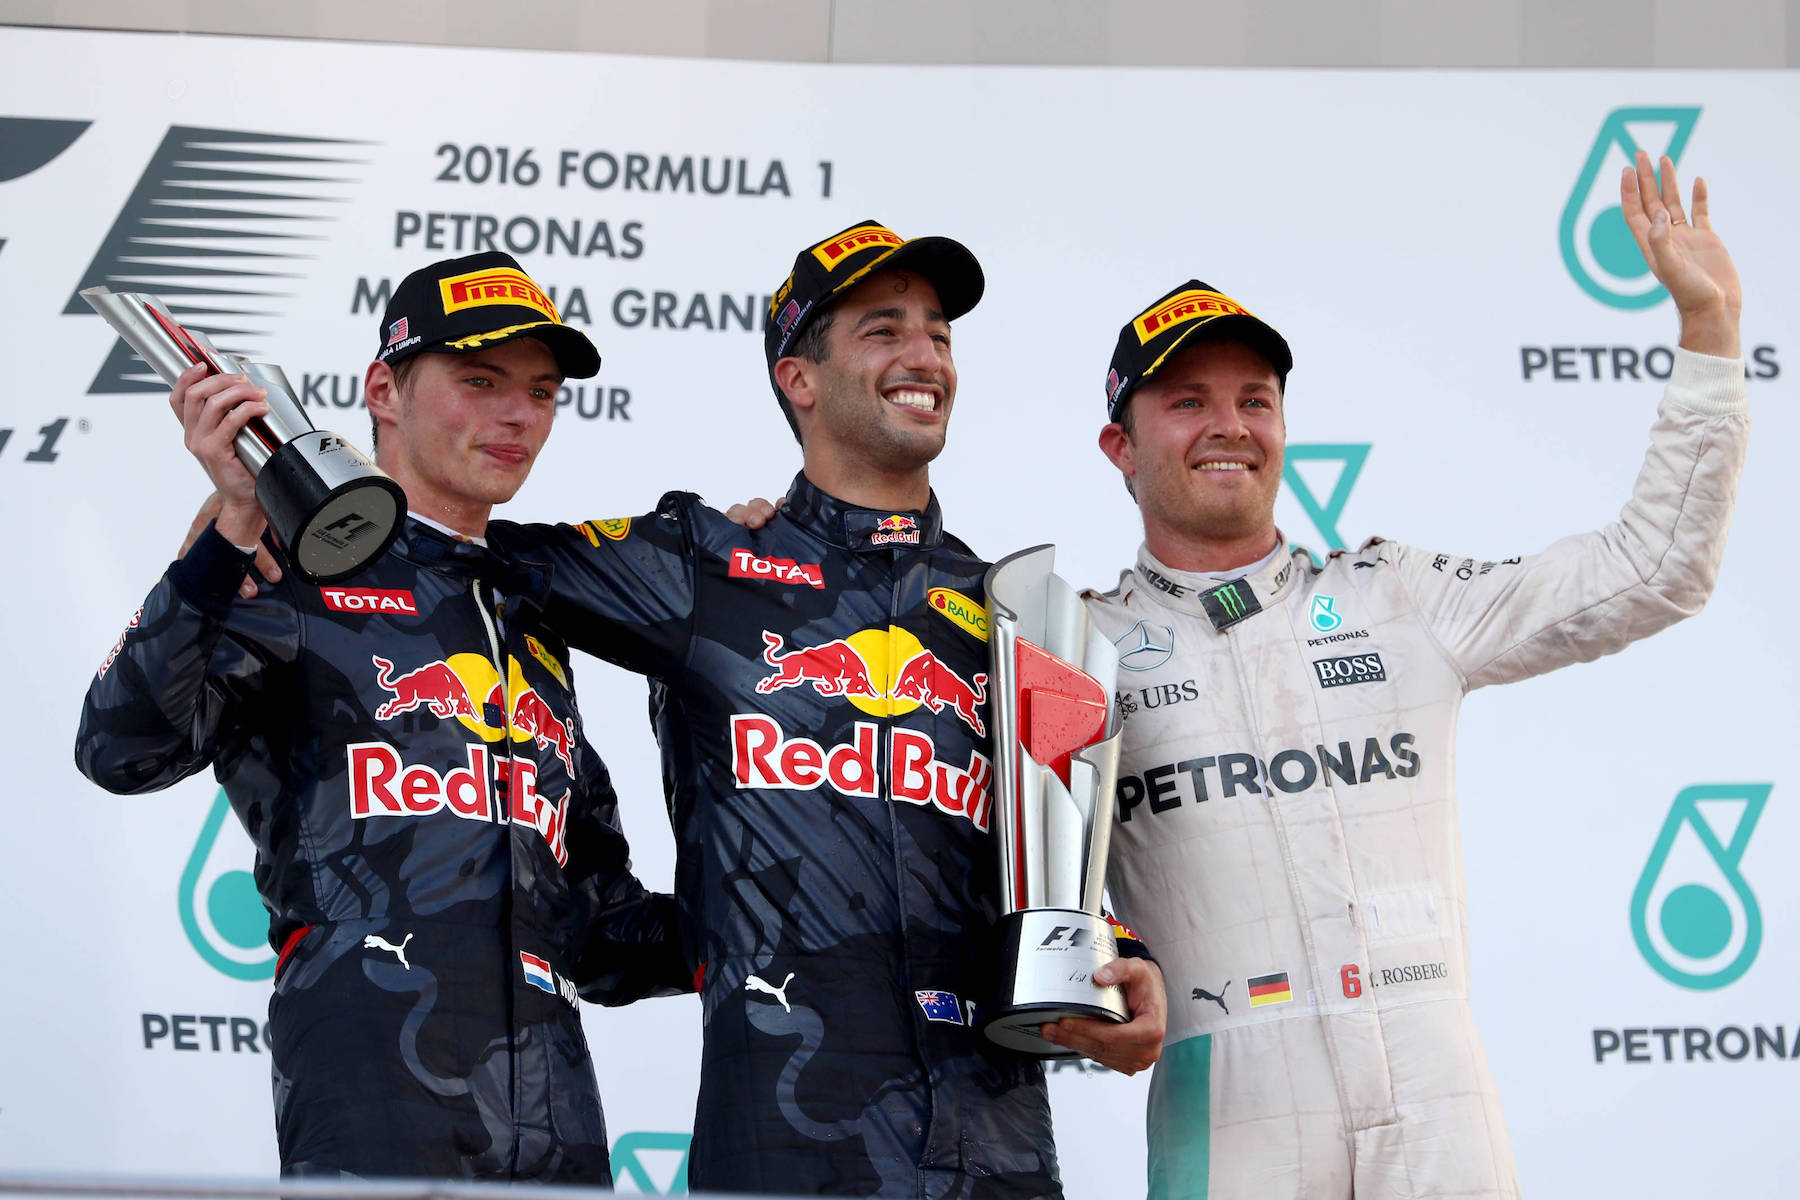 Salracing - Malaysia Grand Prix podium winners